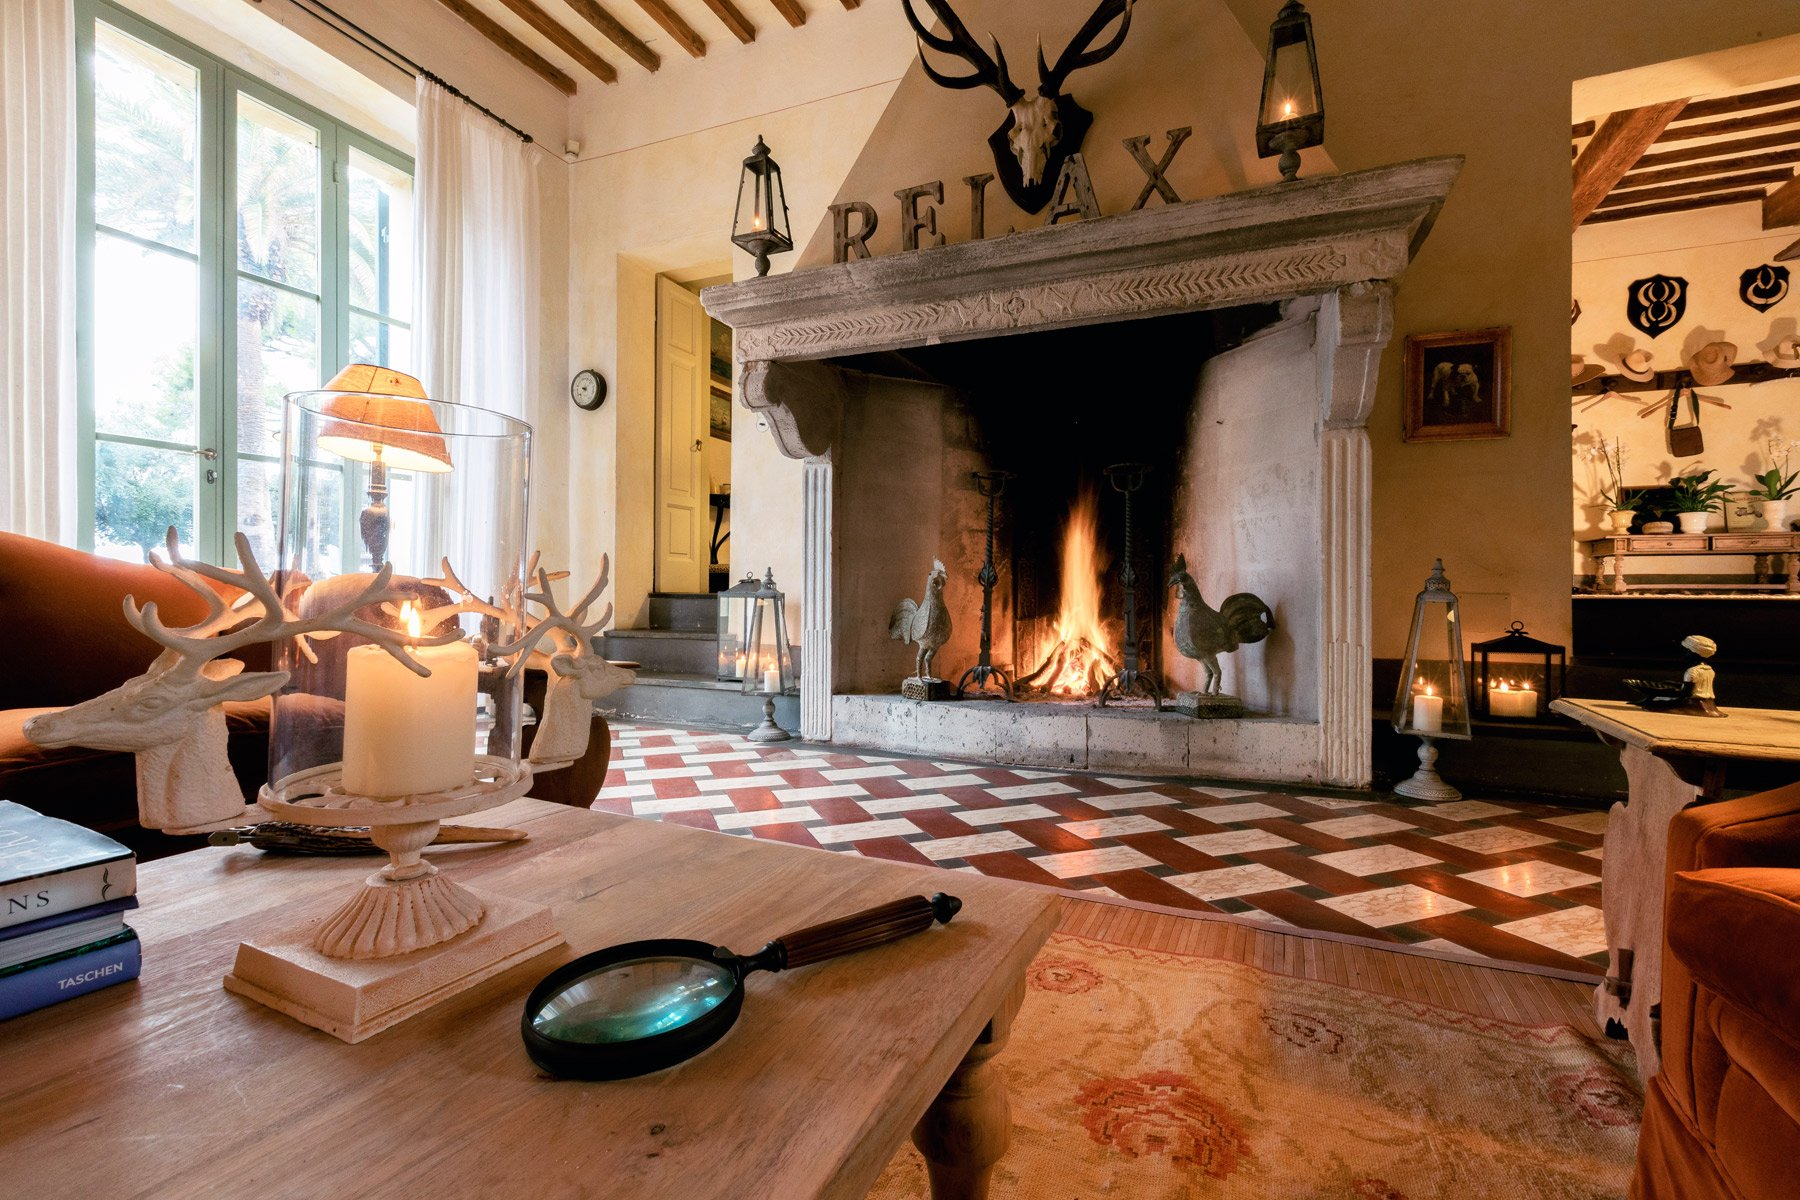 Fireplace in an Argentario villa